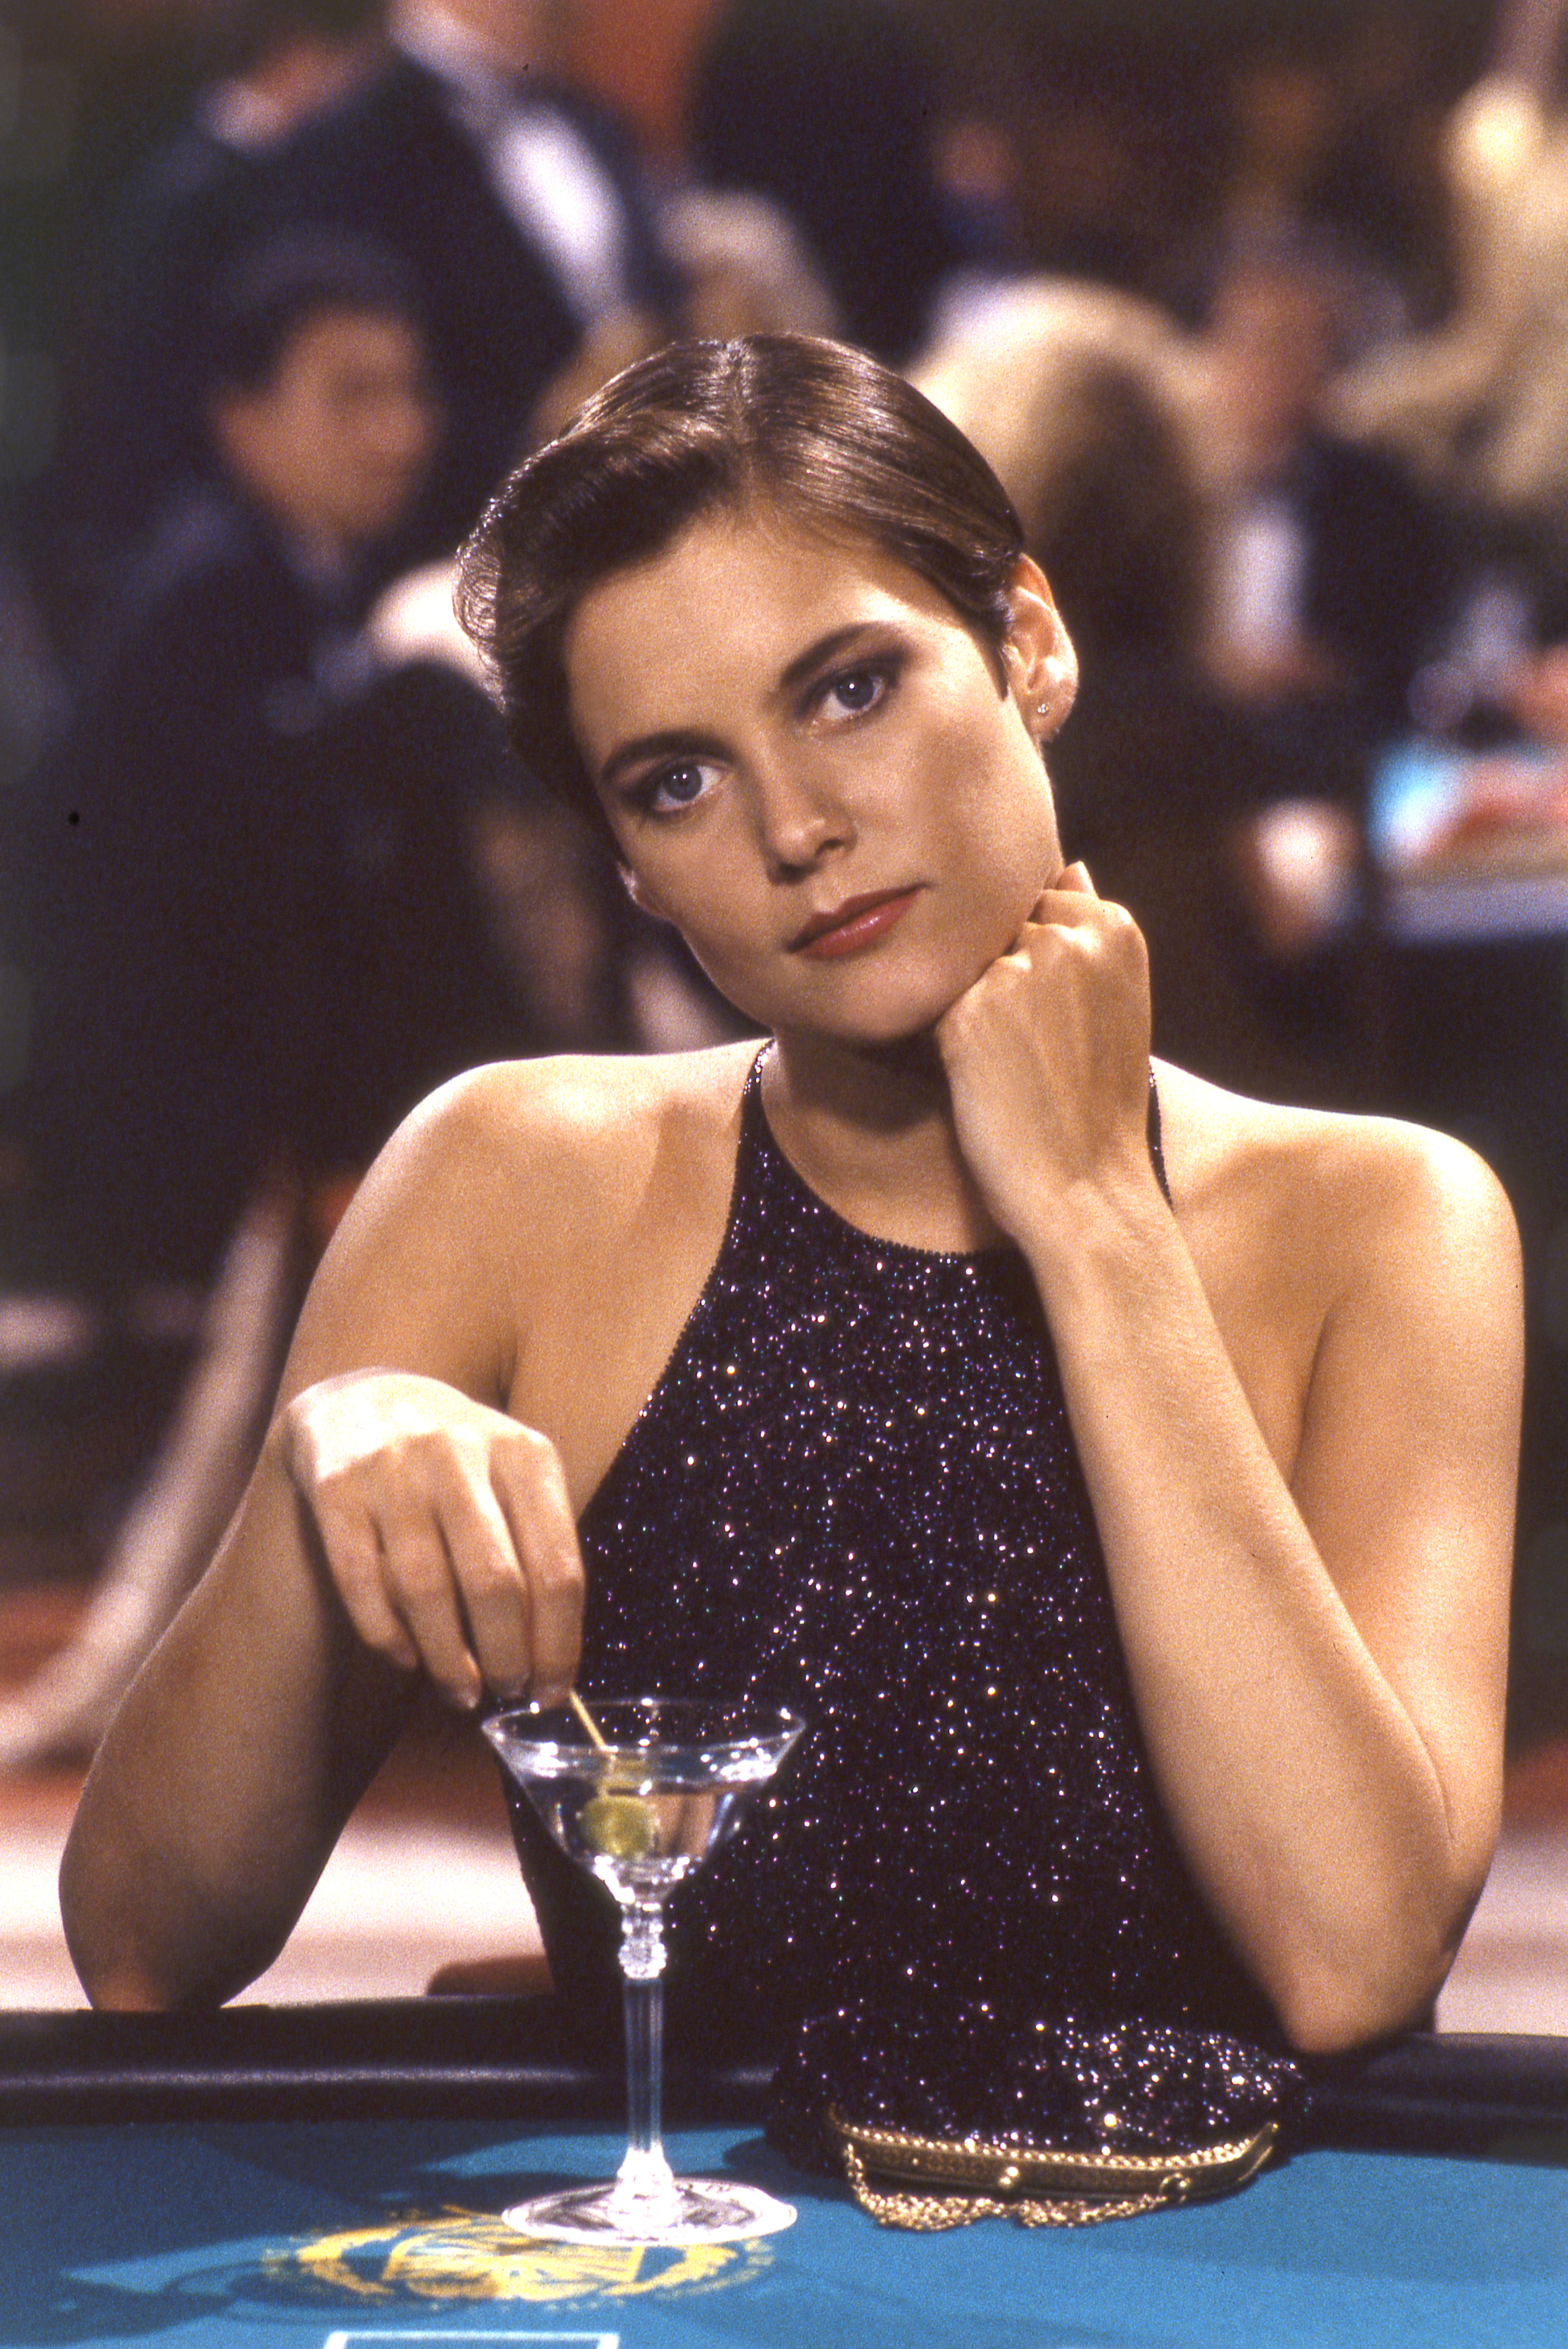 Carey Lowell in Licence to Kill (1989)